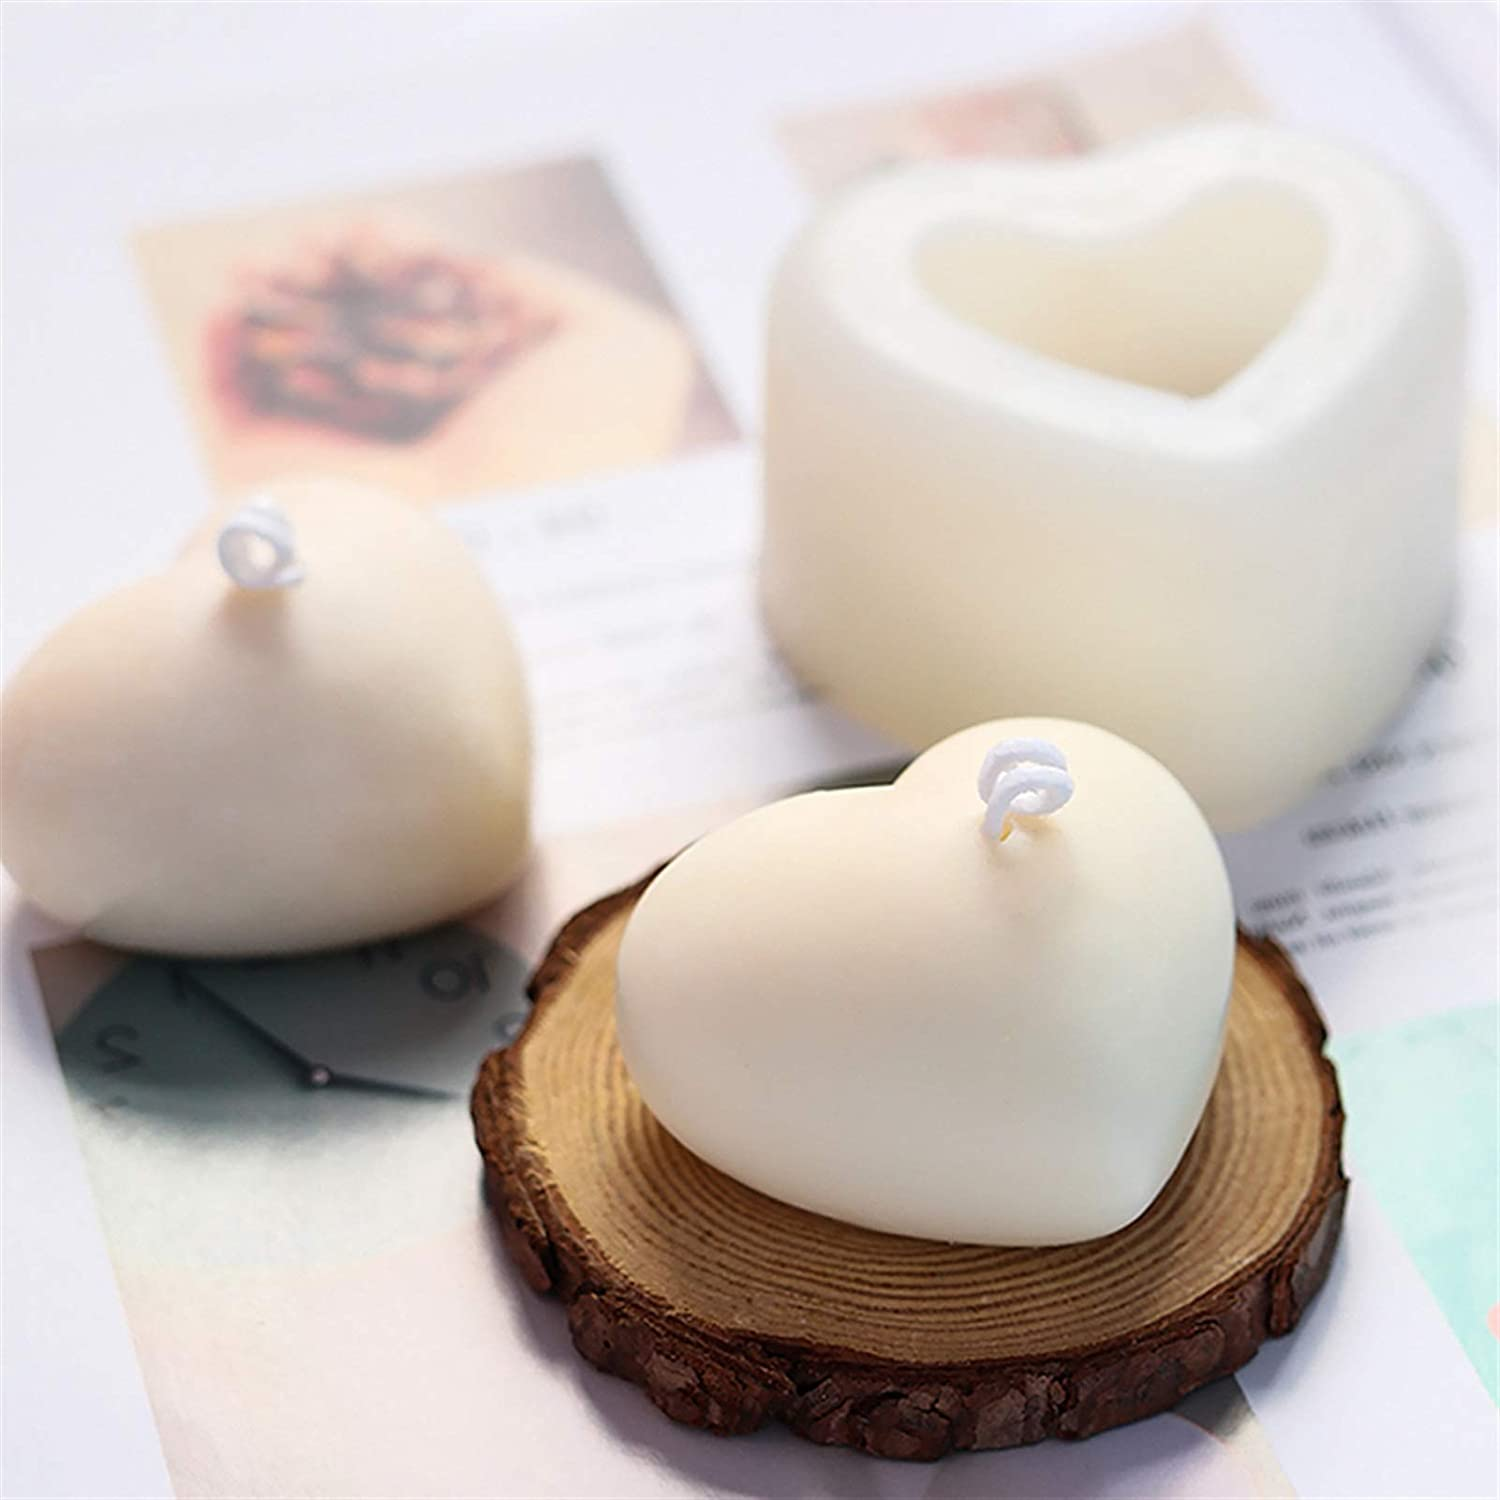 YZDKJ 3D Love Heart Silicone Aroma Gypsum Ranking TOP20 Plaster Mold 67% OFF of fixed price